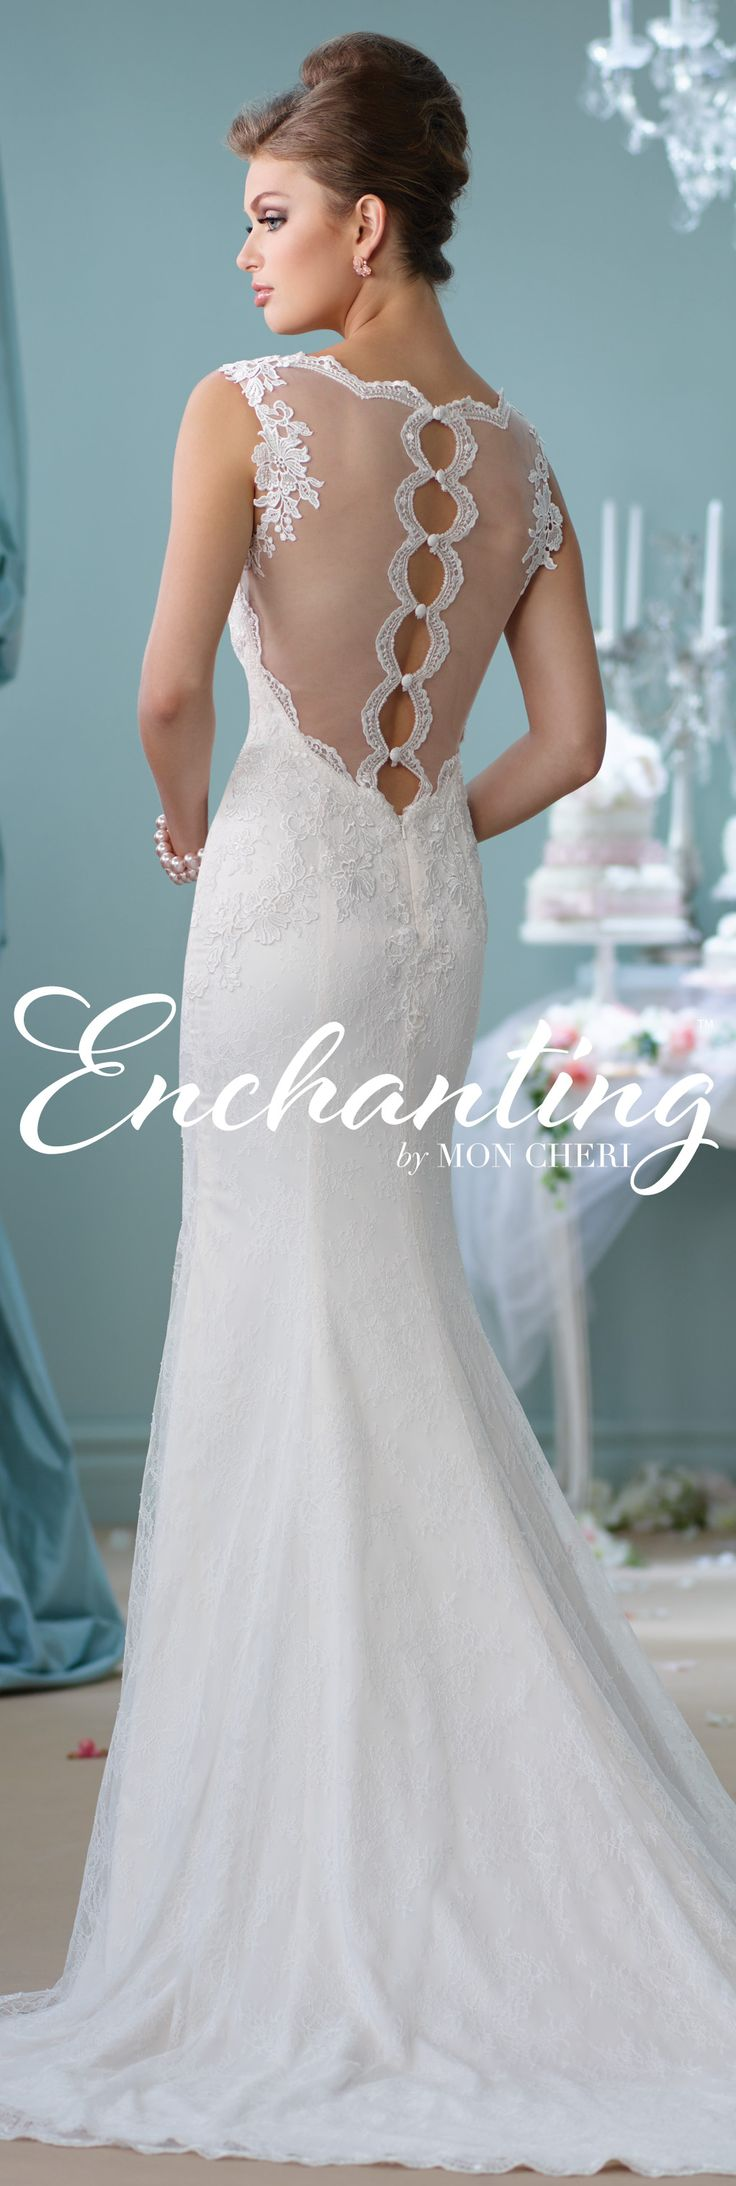 Enchanting by Mon Cheri Spring 2016 ~Style No. 116132 #laceweddingdress